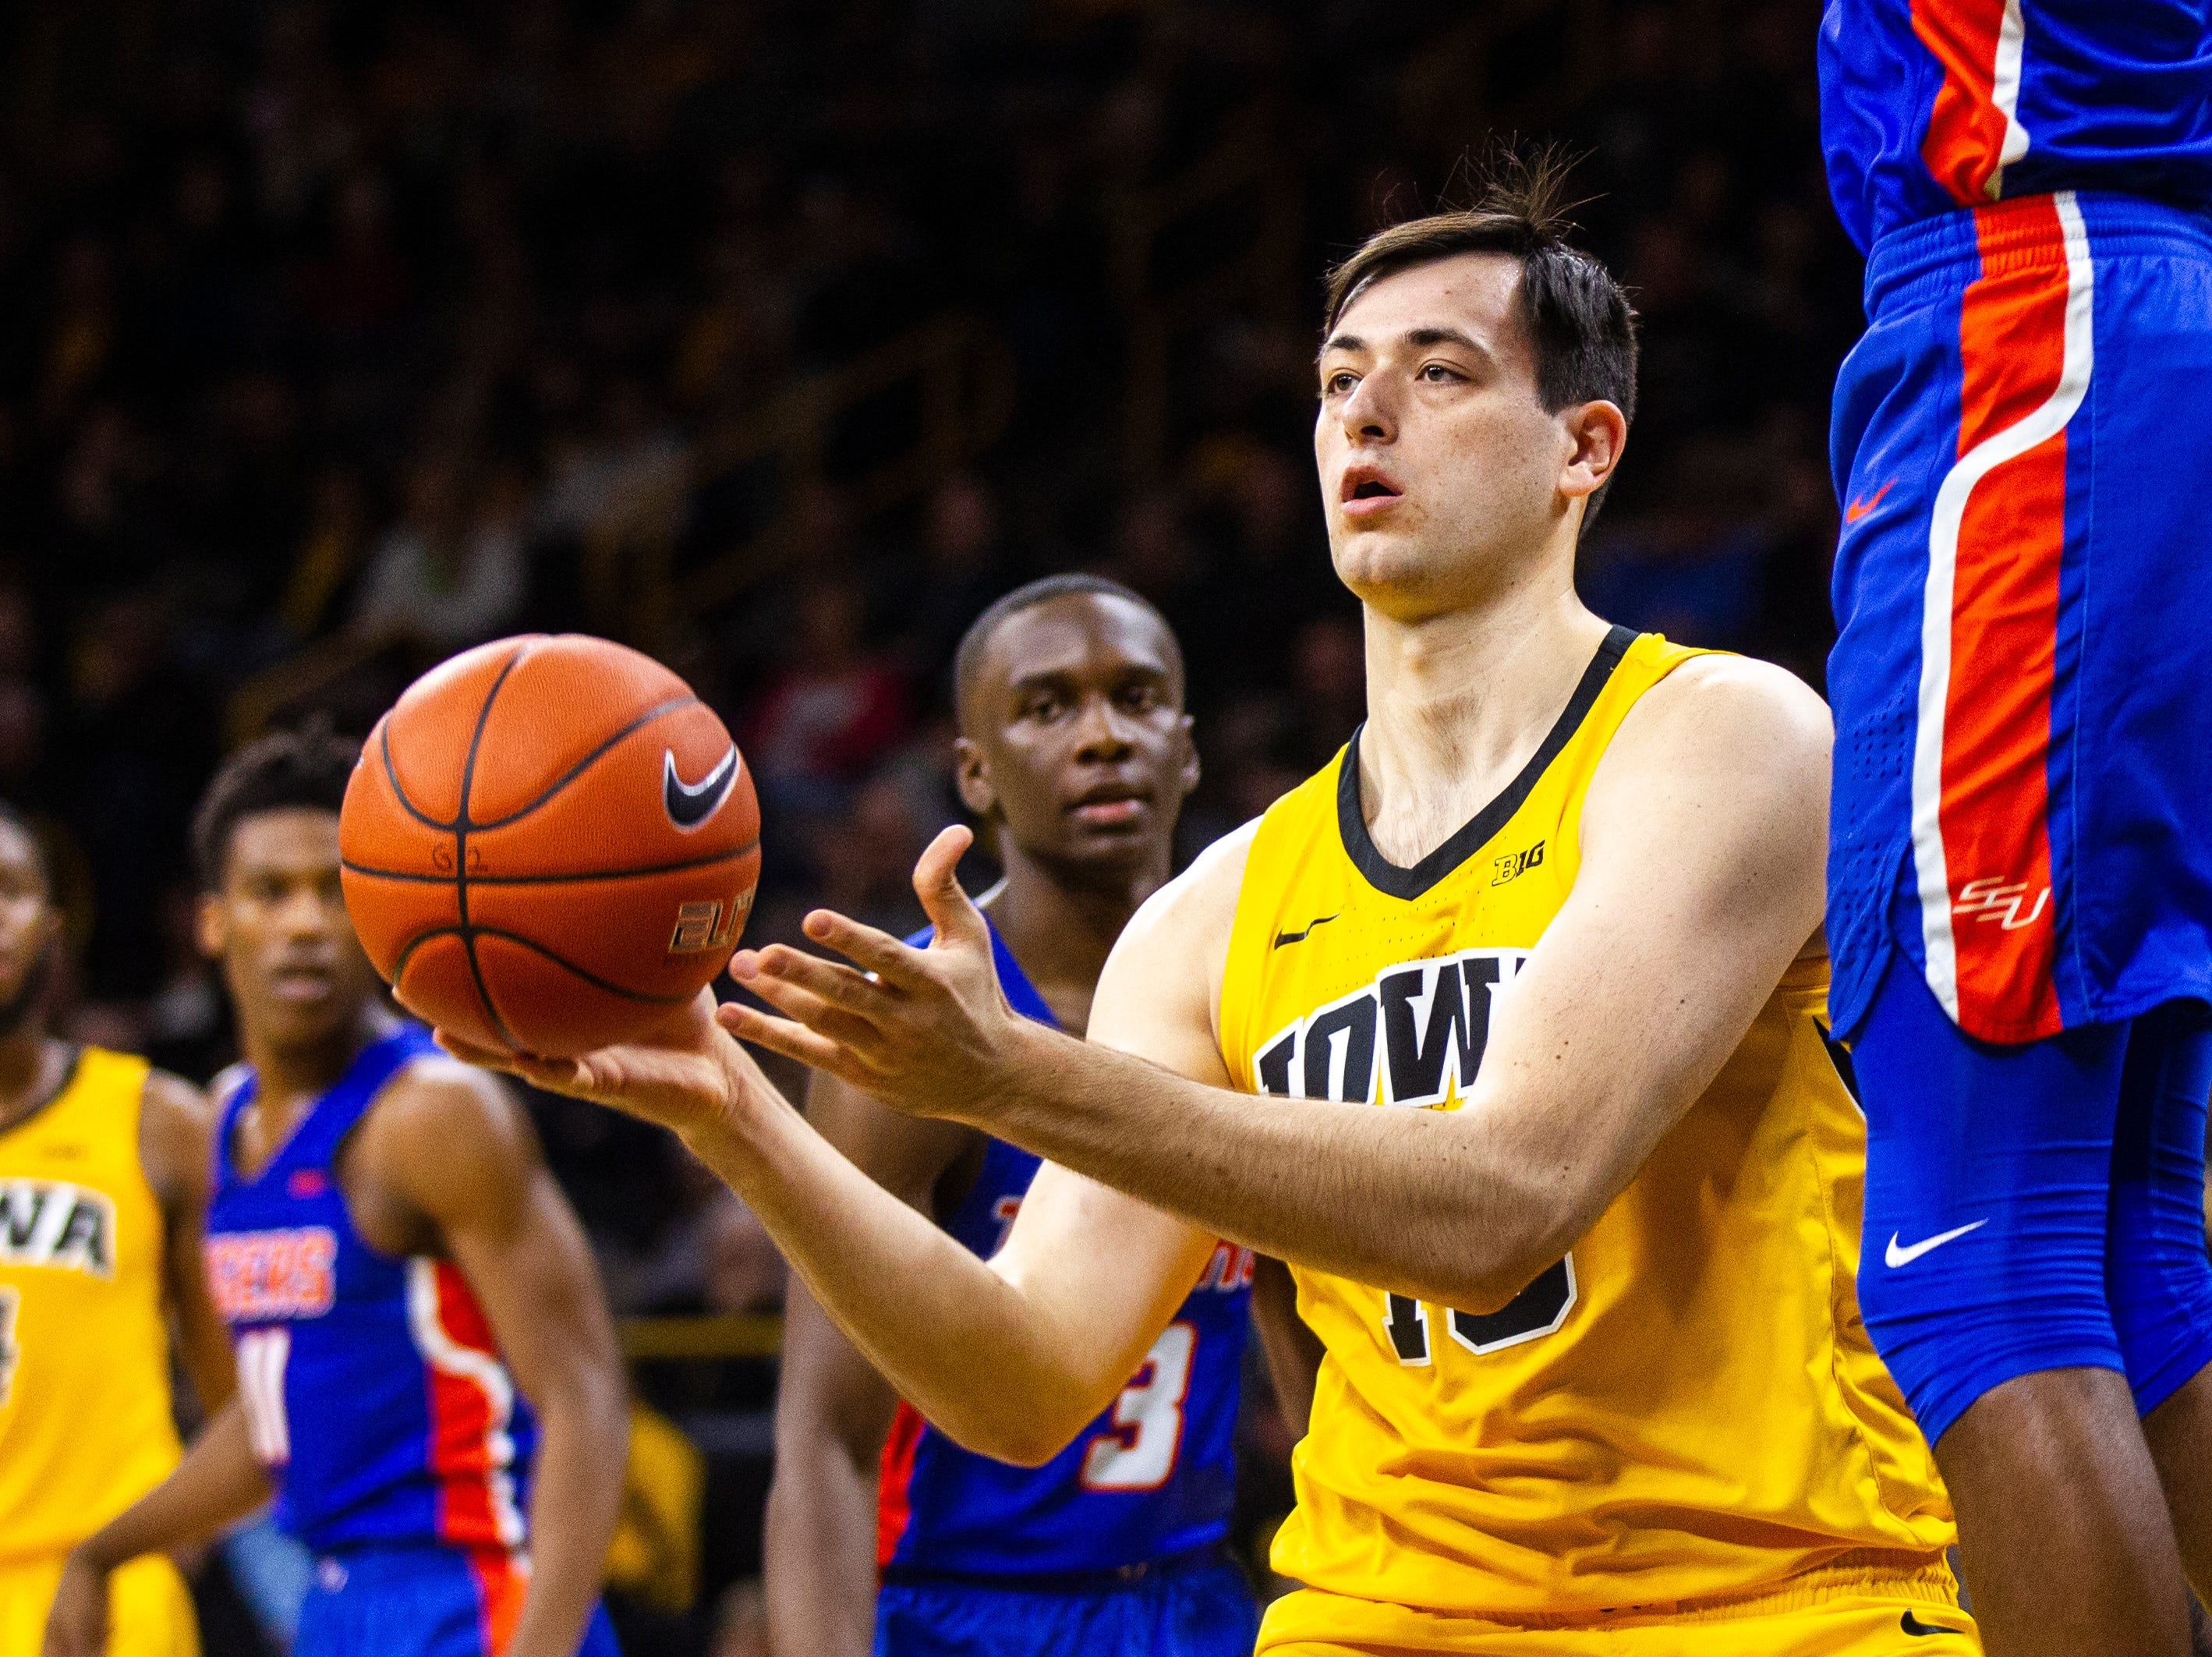 Iowa forward Ryan Kriener (15) passes to a teammate during a NCAA men's basketball game on Saturday, Dec. 22, 2018, at Carver-Hawkeye Arena in Iowa City.